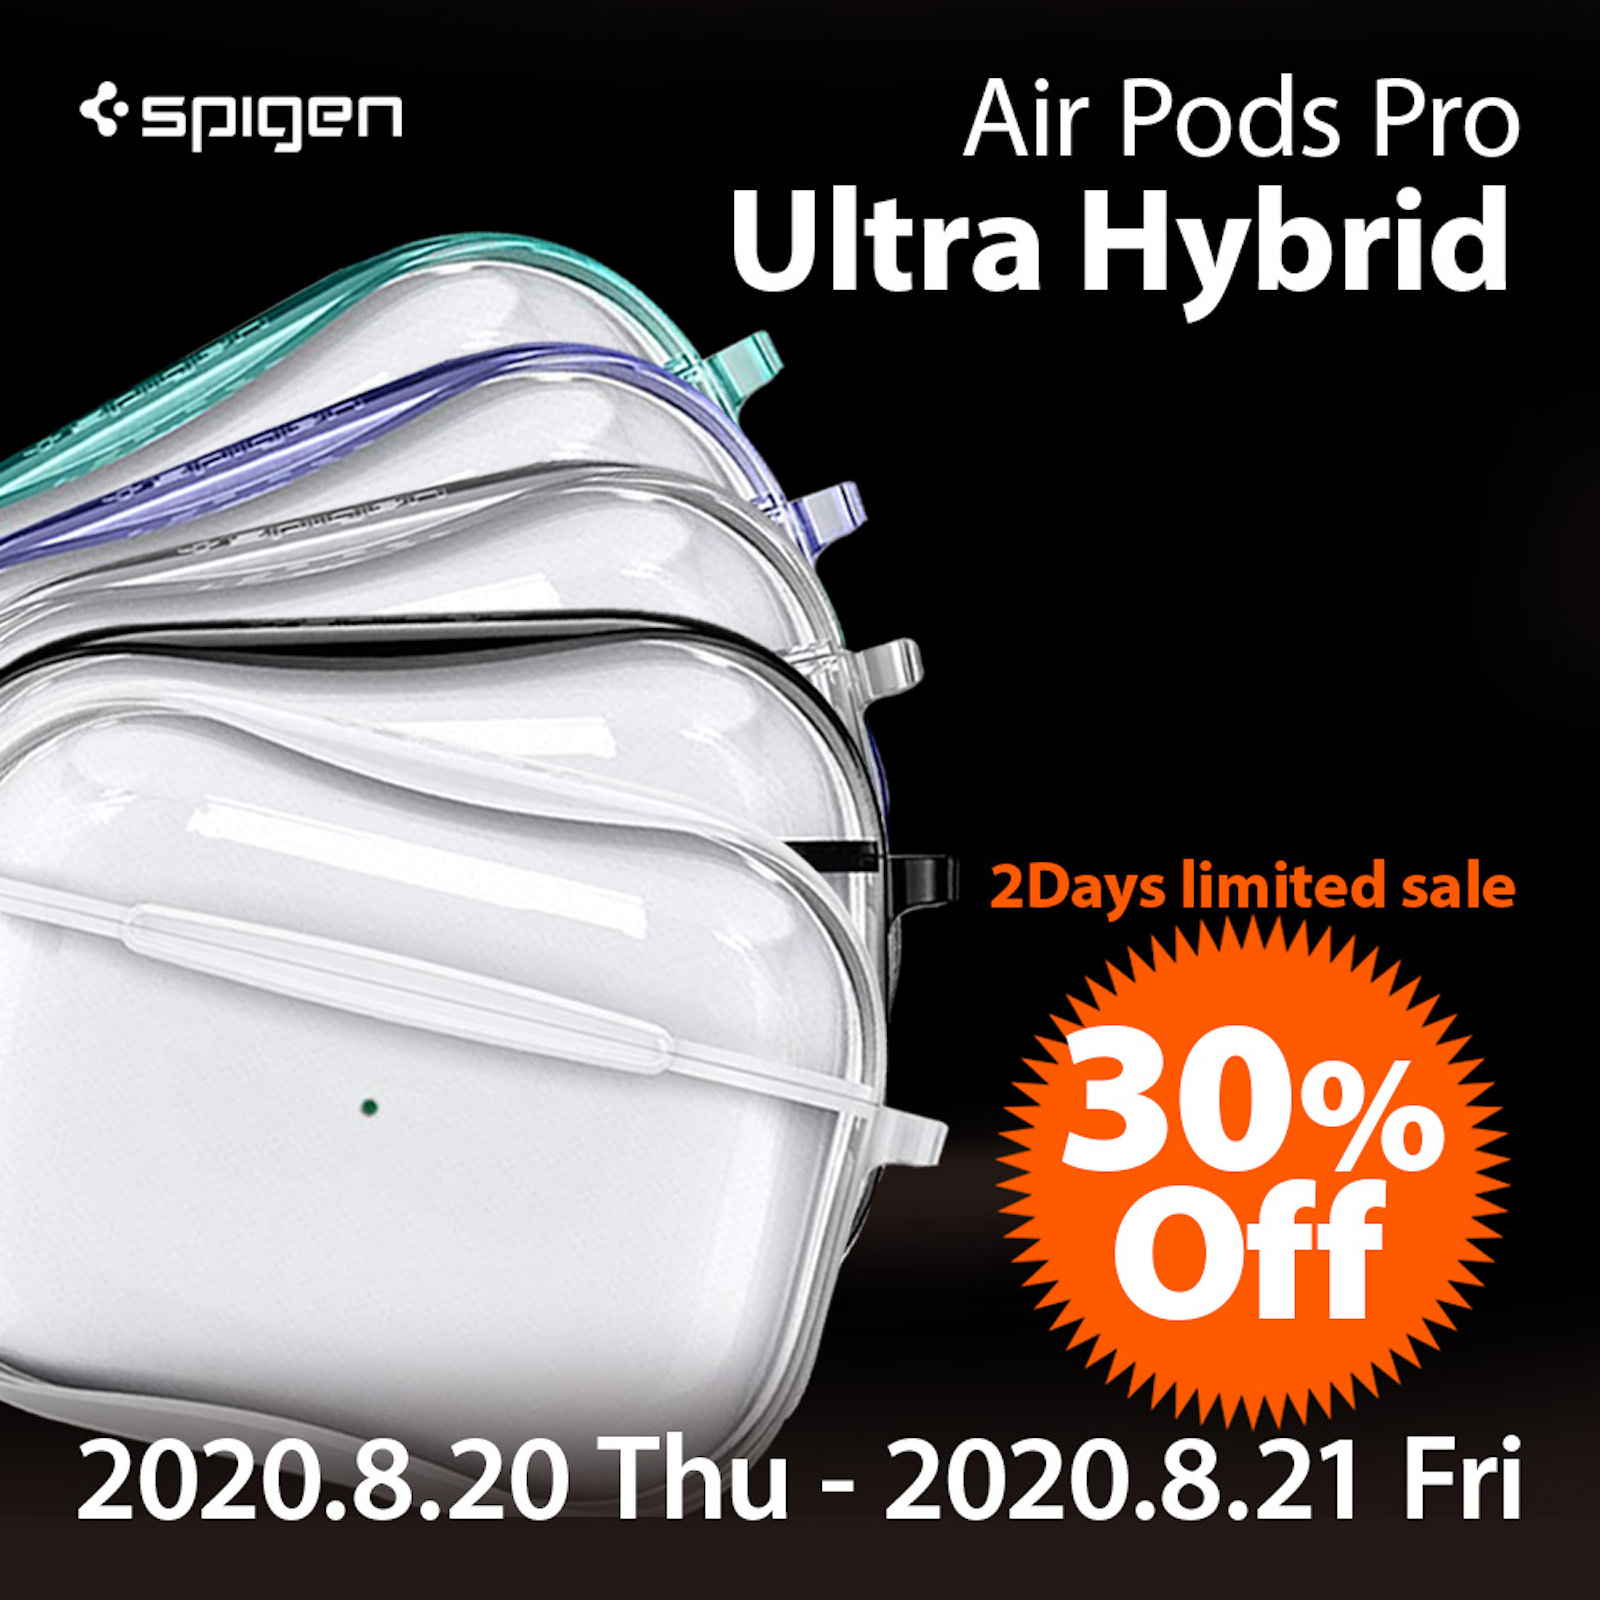 Spigen ultra hybrid airpodspro case sale 1